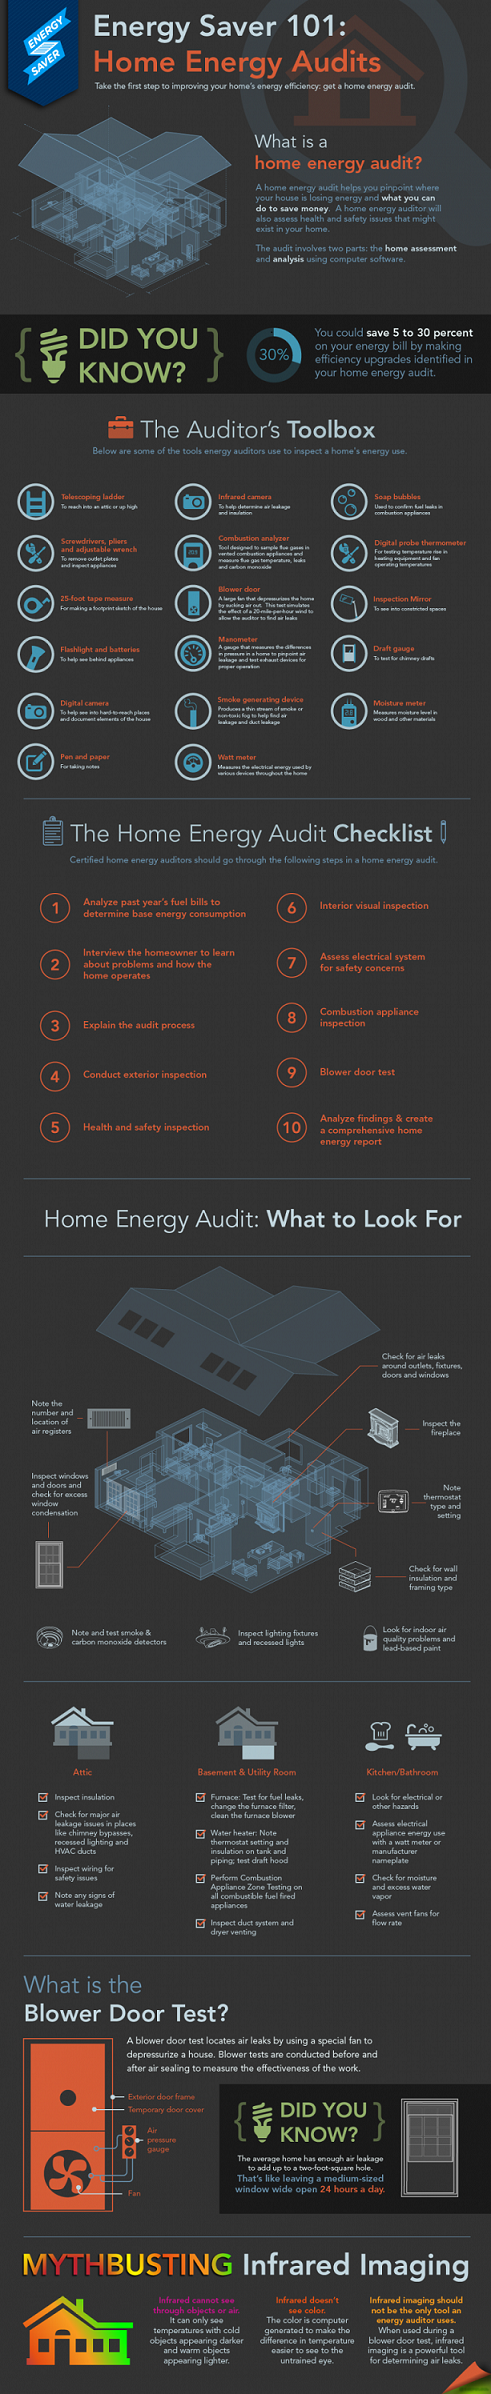 homeEnergyAudits_MG0813-01 (1)